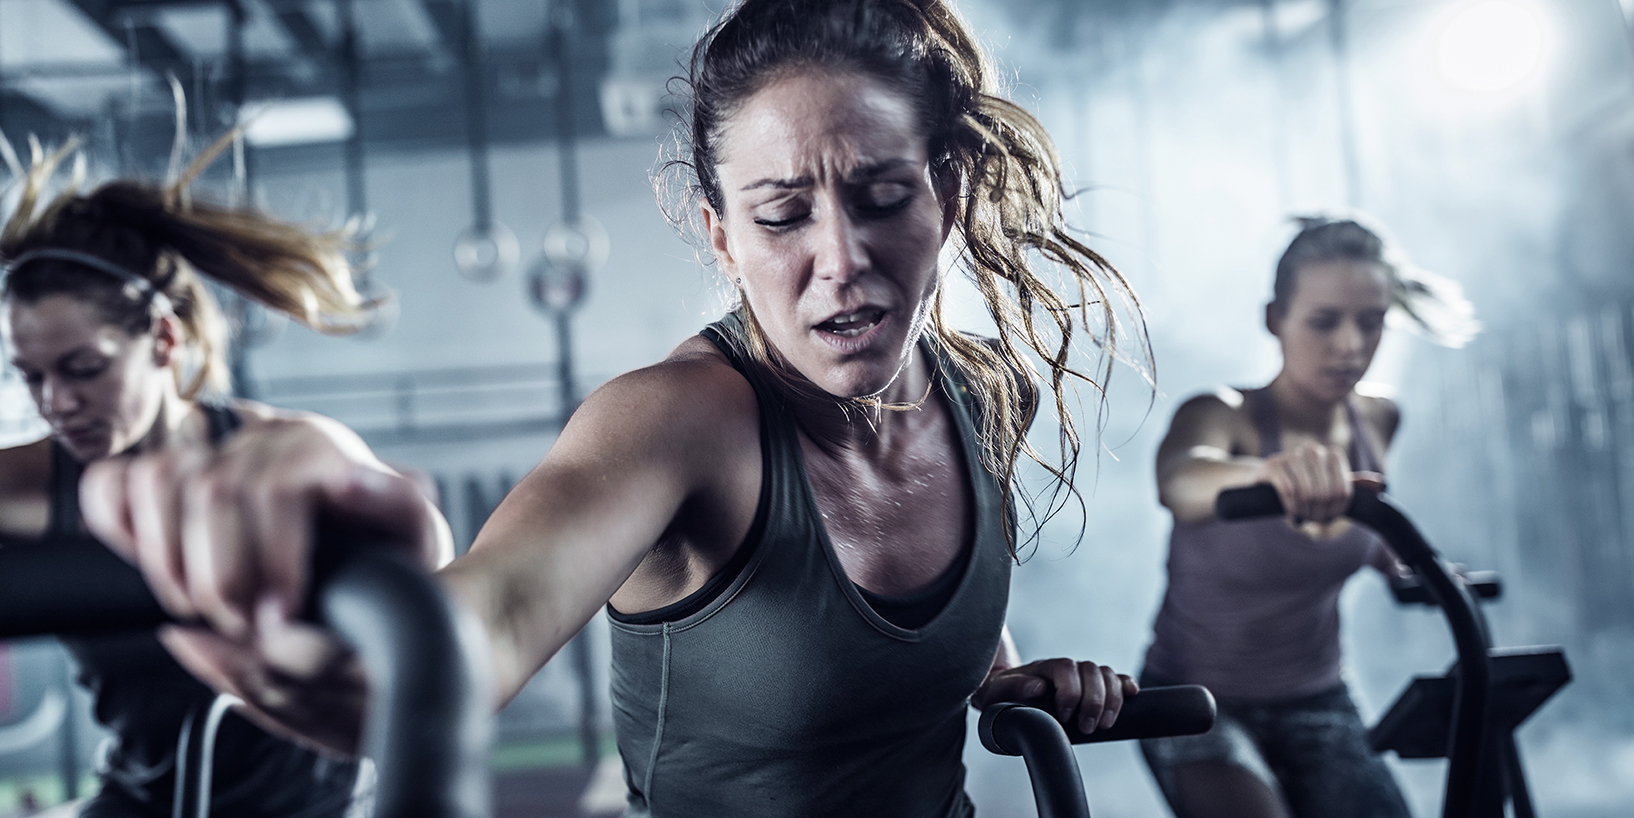 woman sweating while working out